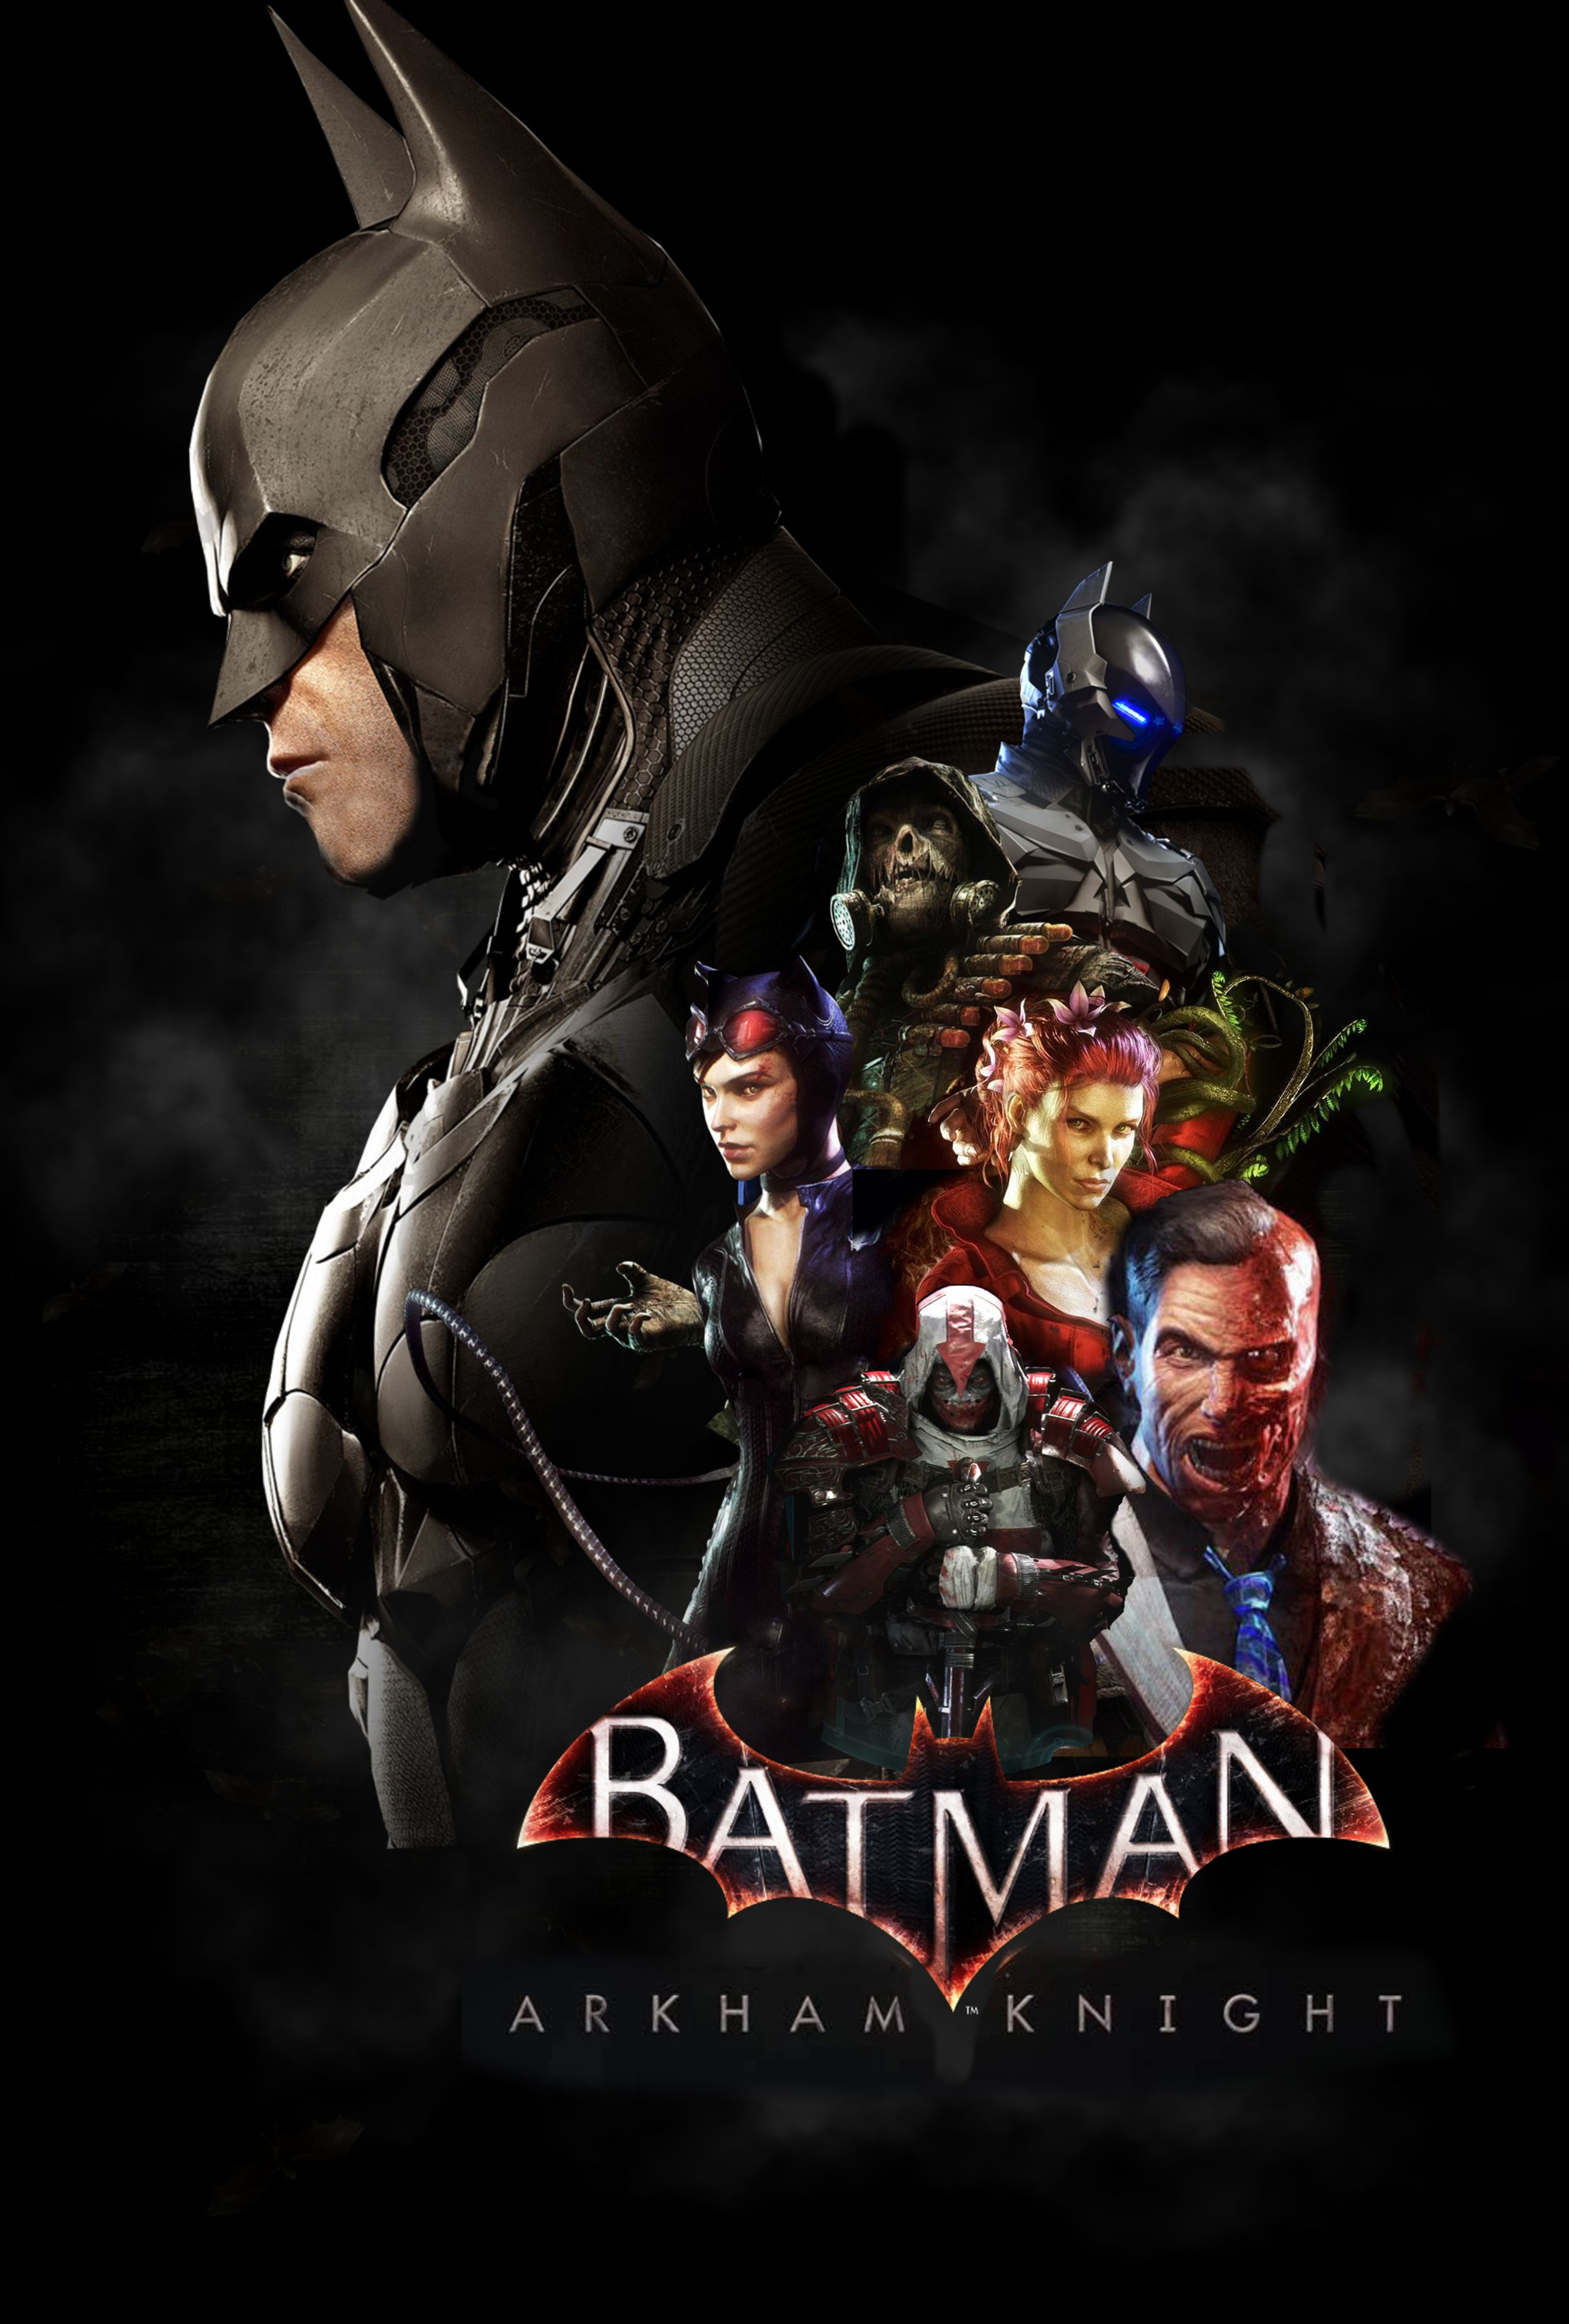 Arkham Knight Poster Fan Made Inspired By Mgsv Batman Arkham Knight Characters Batman Pictures Arkham Knight